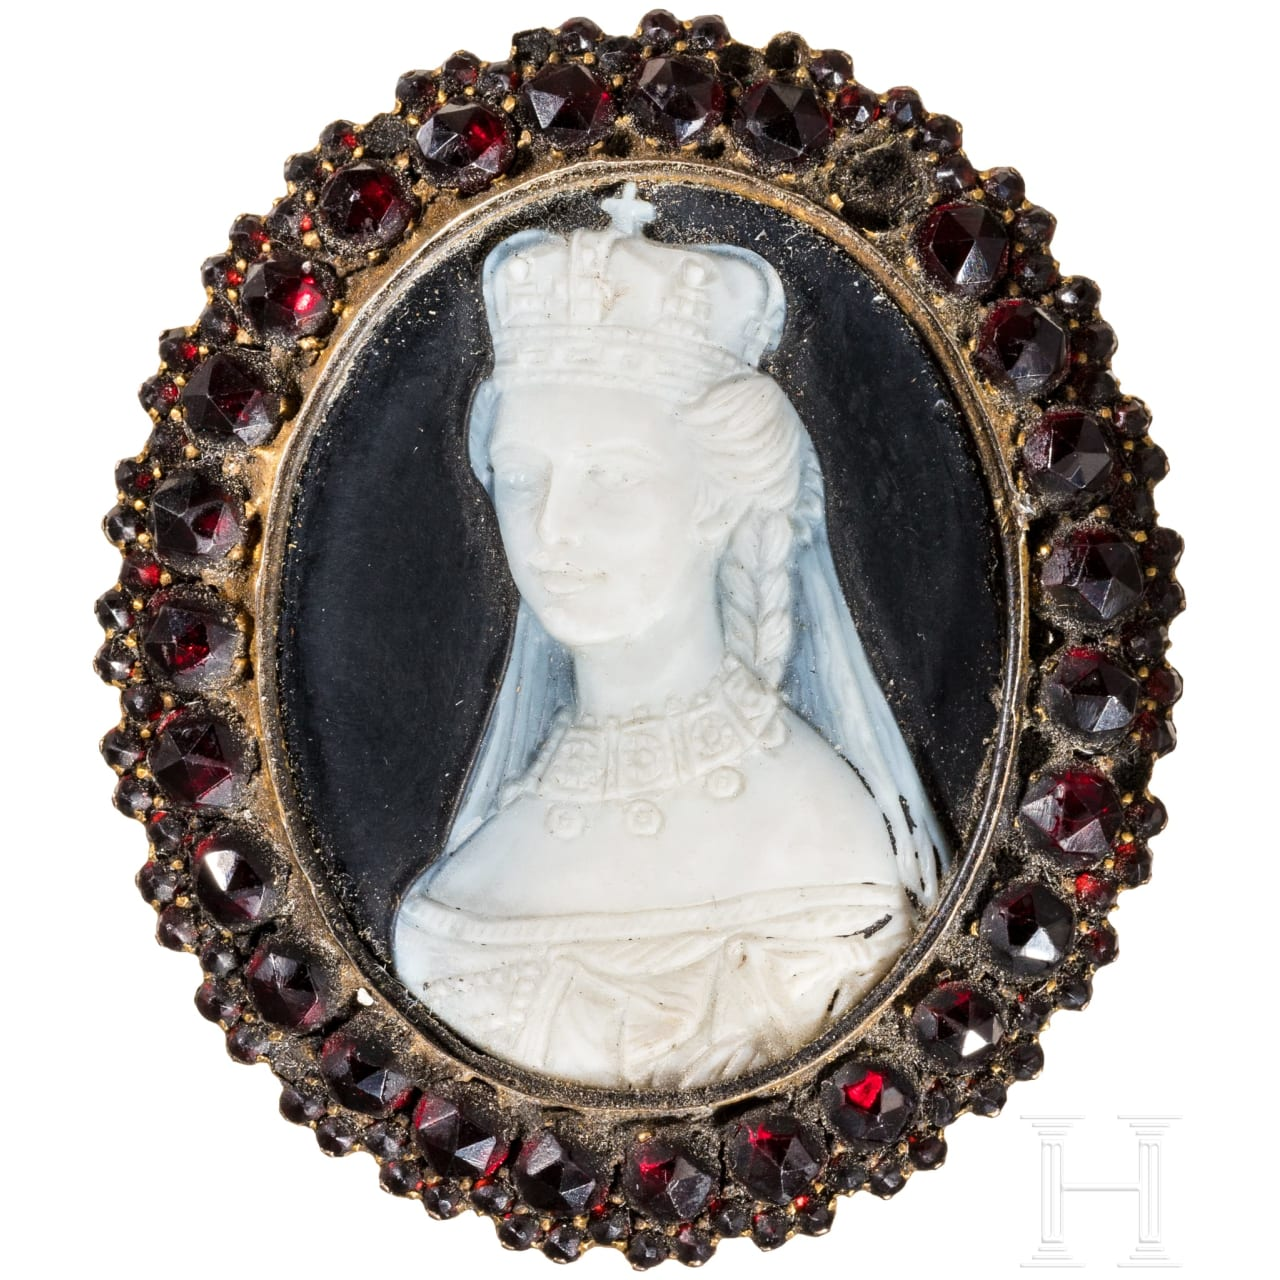 Empress Elisabeth of Austria - funeral brooch with cameo portrait